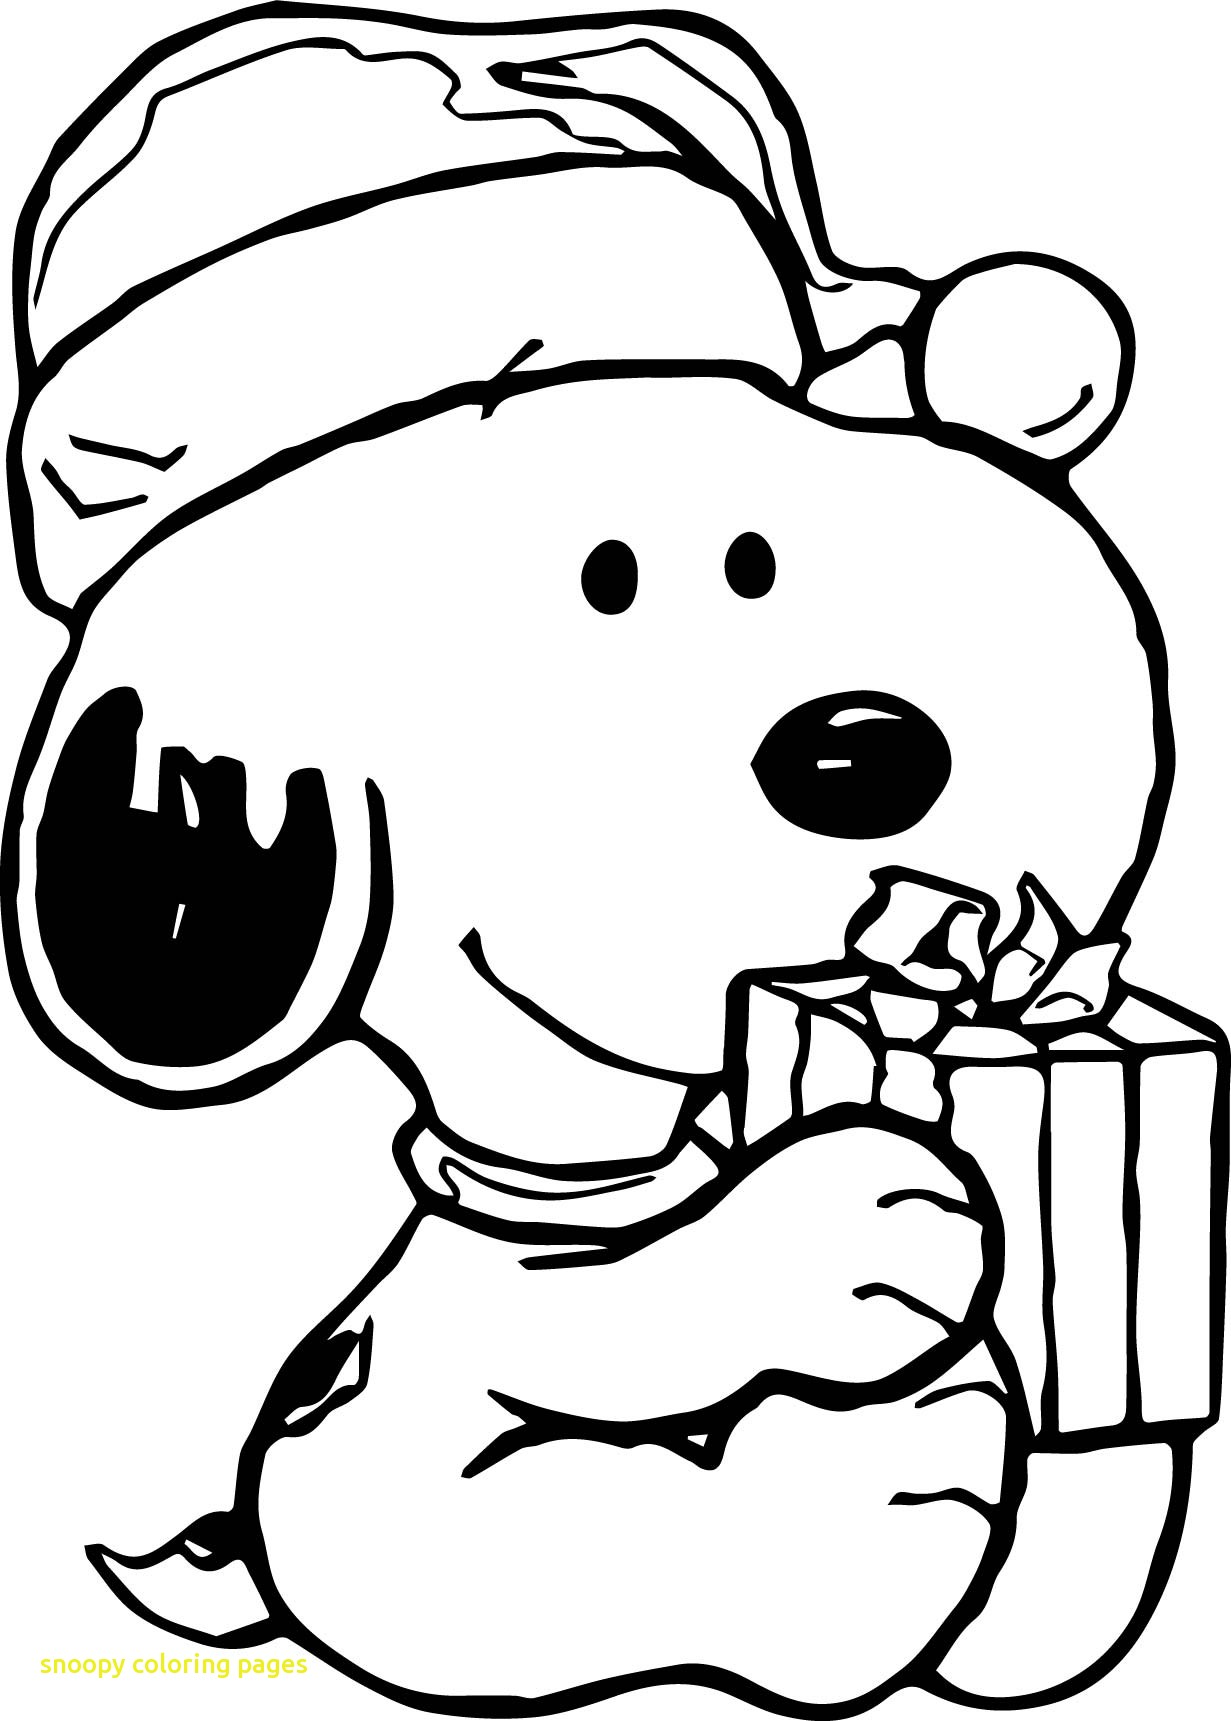 Snoopy Christmas Drawing At Getdrawings